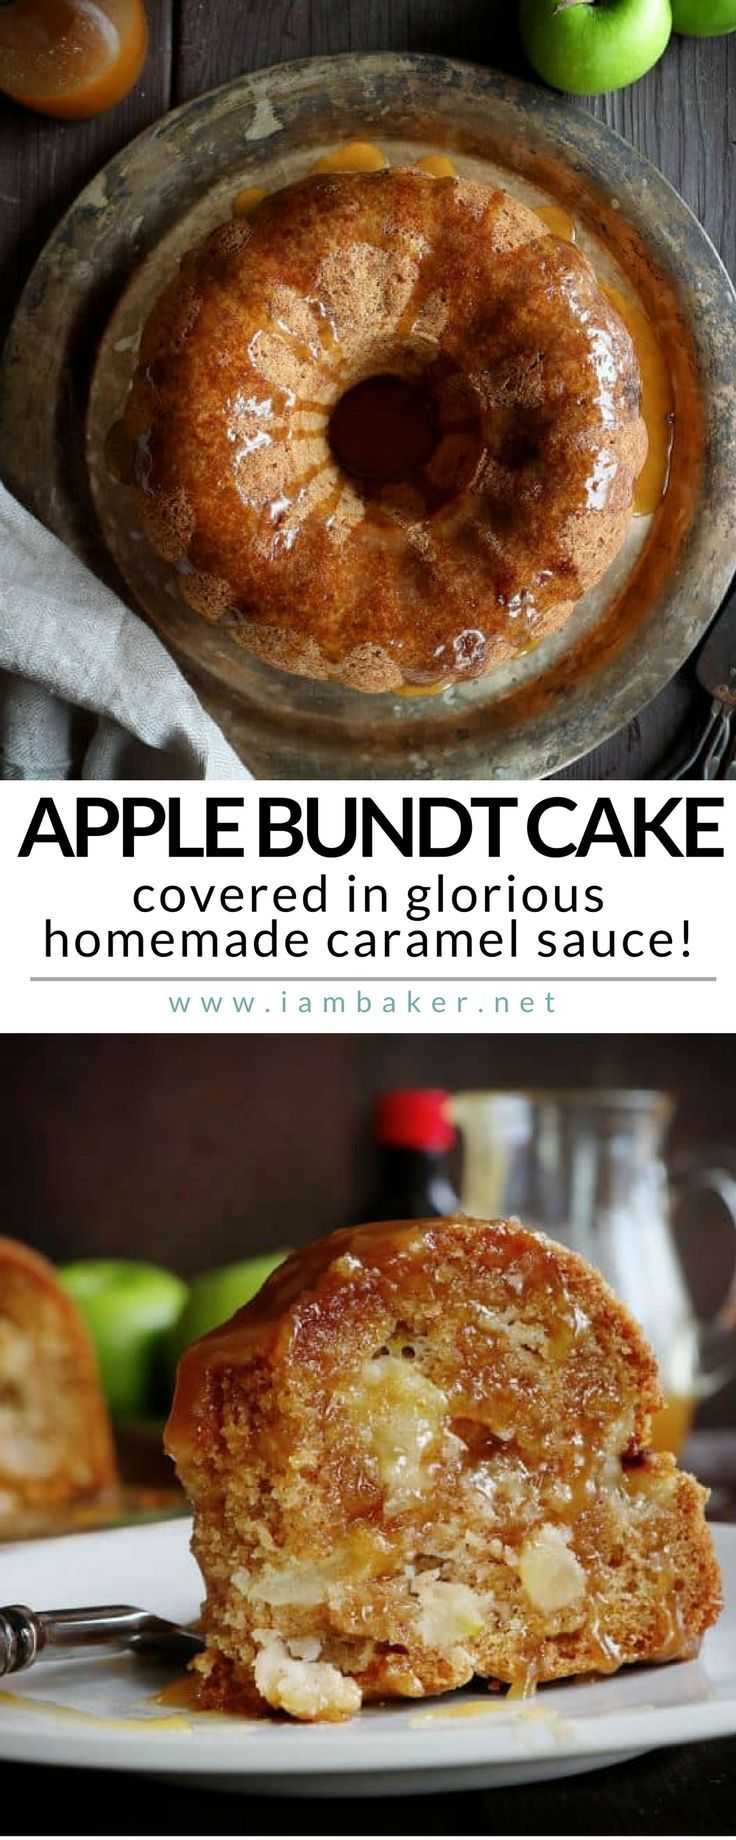 APPLE BUNDT CAKE - if you love bundt cake recipes, try this apple bundt cake recipe. Big chunks of apples and nestled into a cinnamon spice cake batter and covered in glorious homemade caramel sauce. For more simple and easy dessert recipes to make, check us out at #iambaker. #cake #desserts #yummydesserts #recipeoftheday